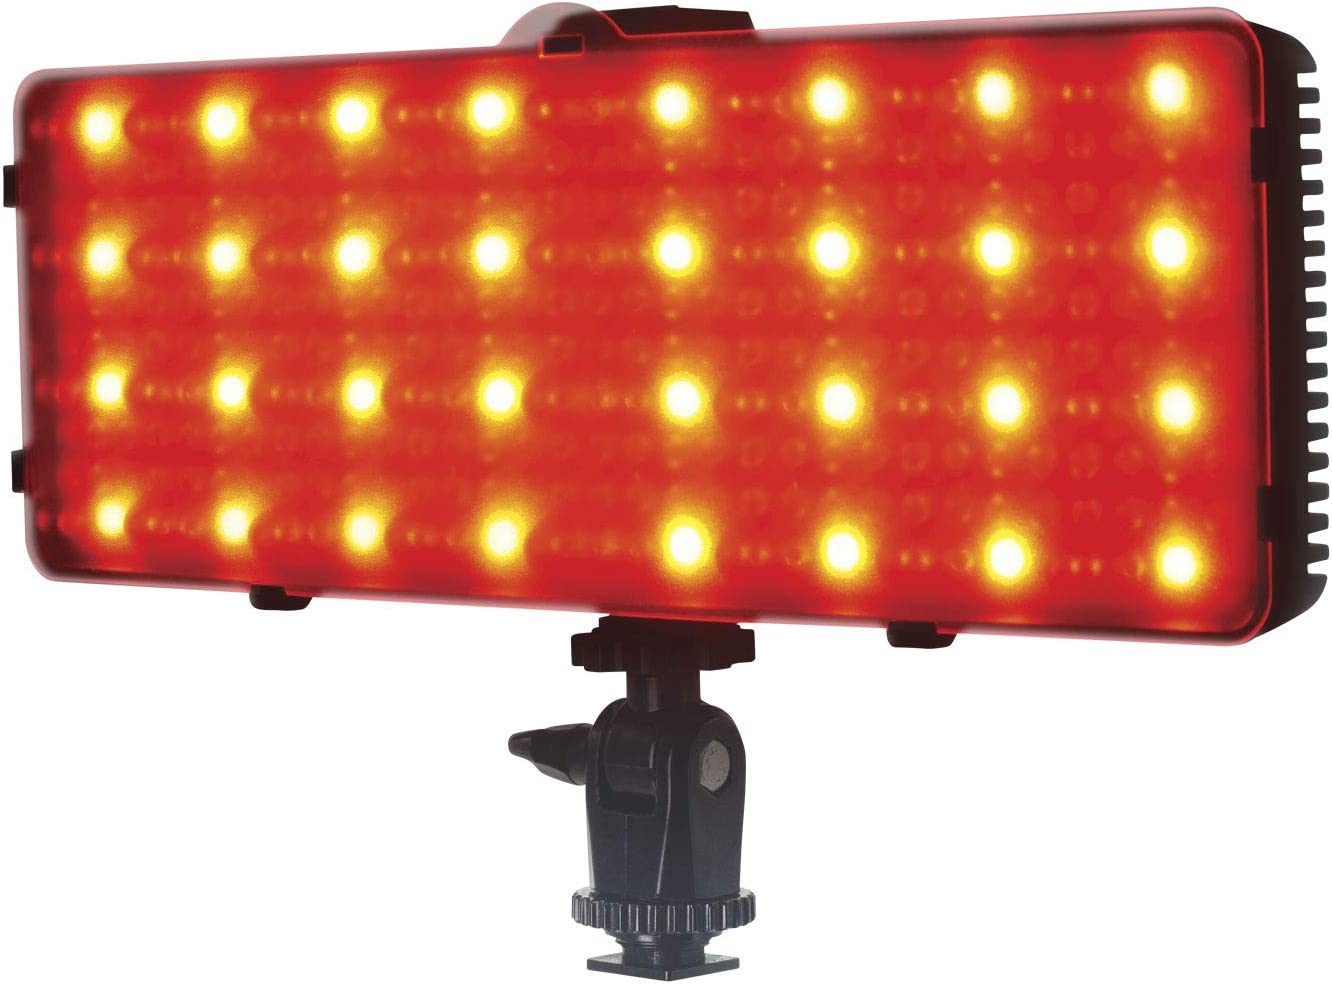 Smith-Victor SmartLED Spectrum Limited time cheap sale Multi Color Blueto Panel Excellent with LED